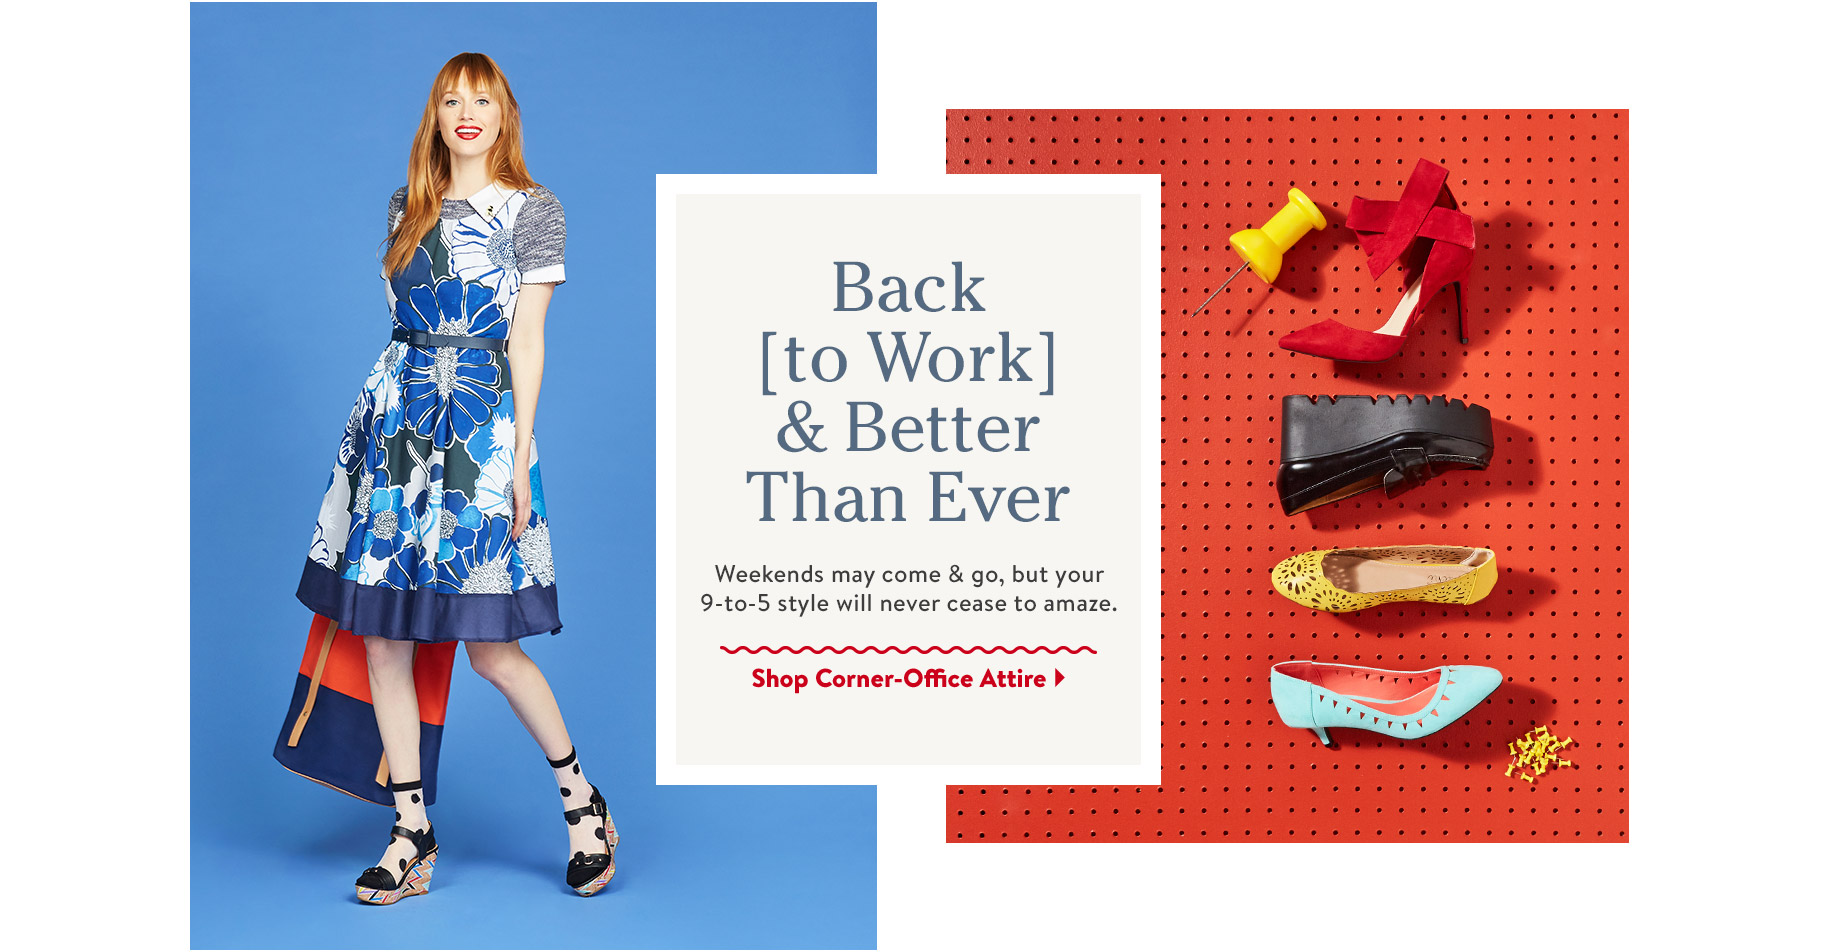 Back to Work & Better Than Ever. Weekends may come & go, but your 9-to-5 style will never cease to amaze. Shop Corner-Office Attire.